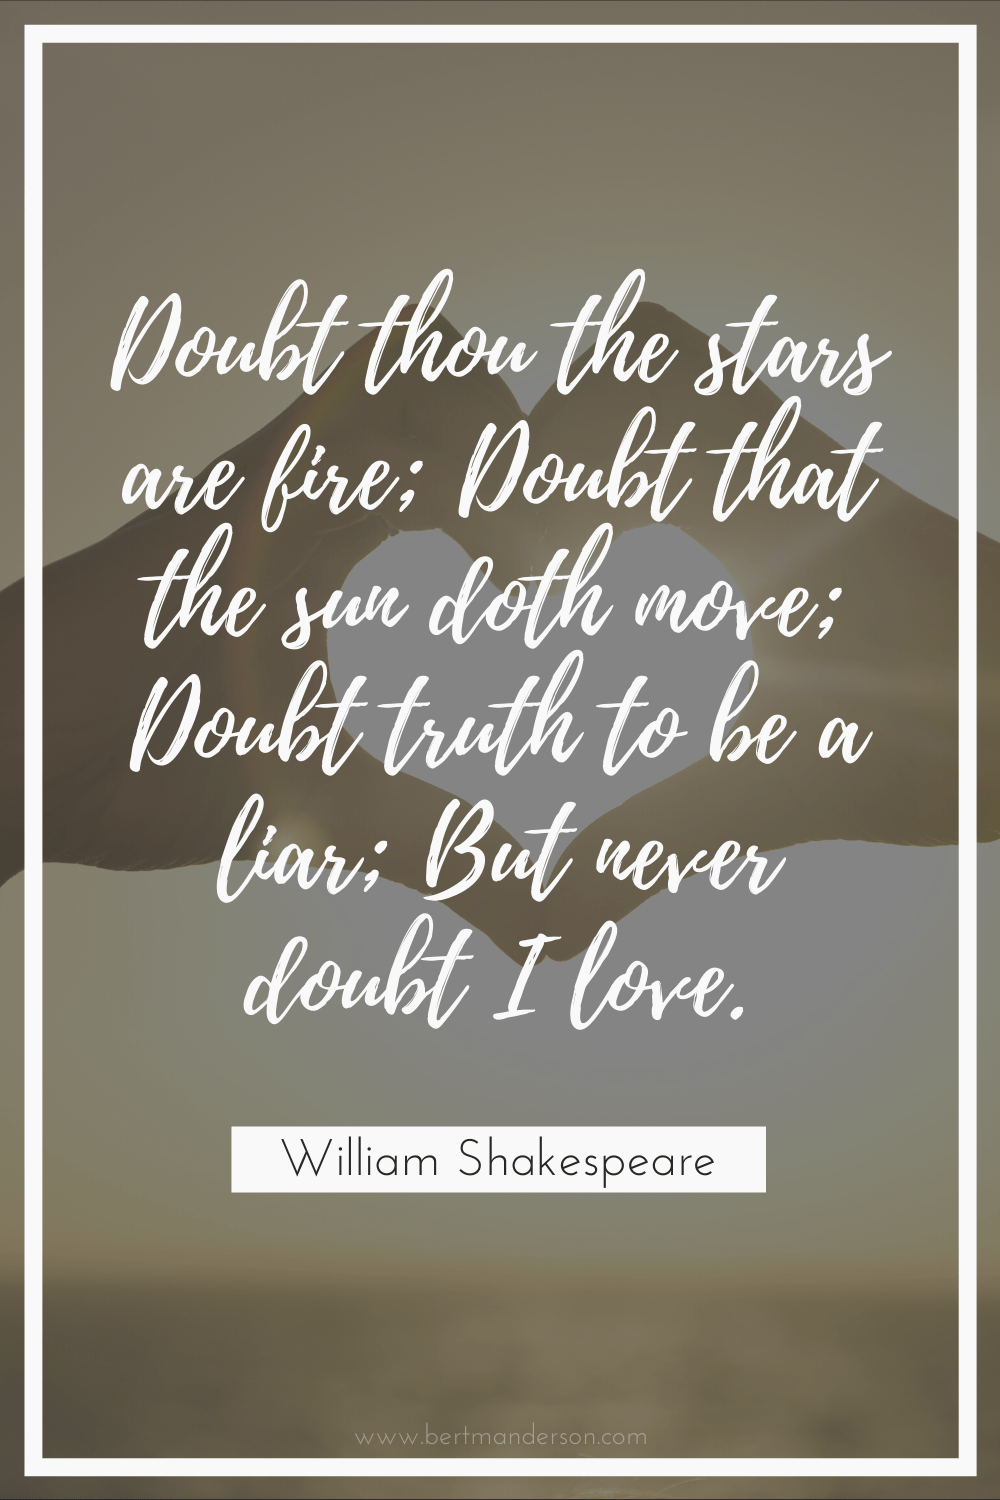 """Doubt thou the stars are fire; Doubt that the sun doth move; Doubt truth to be a liar; But never doubt I love."" William Shakespeare, 50 of the best romantic quotes"